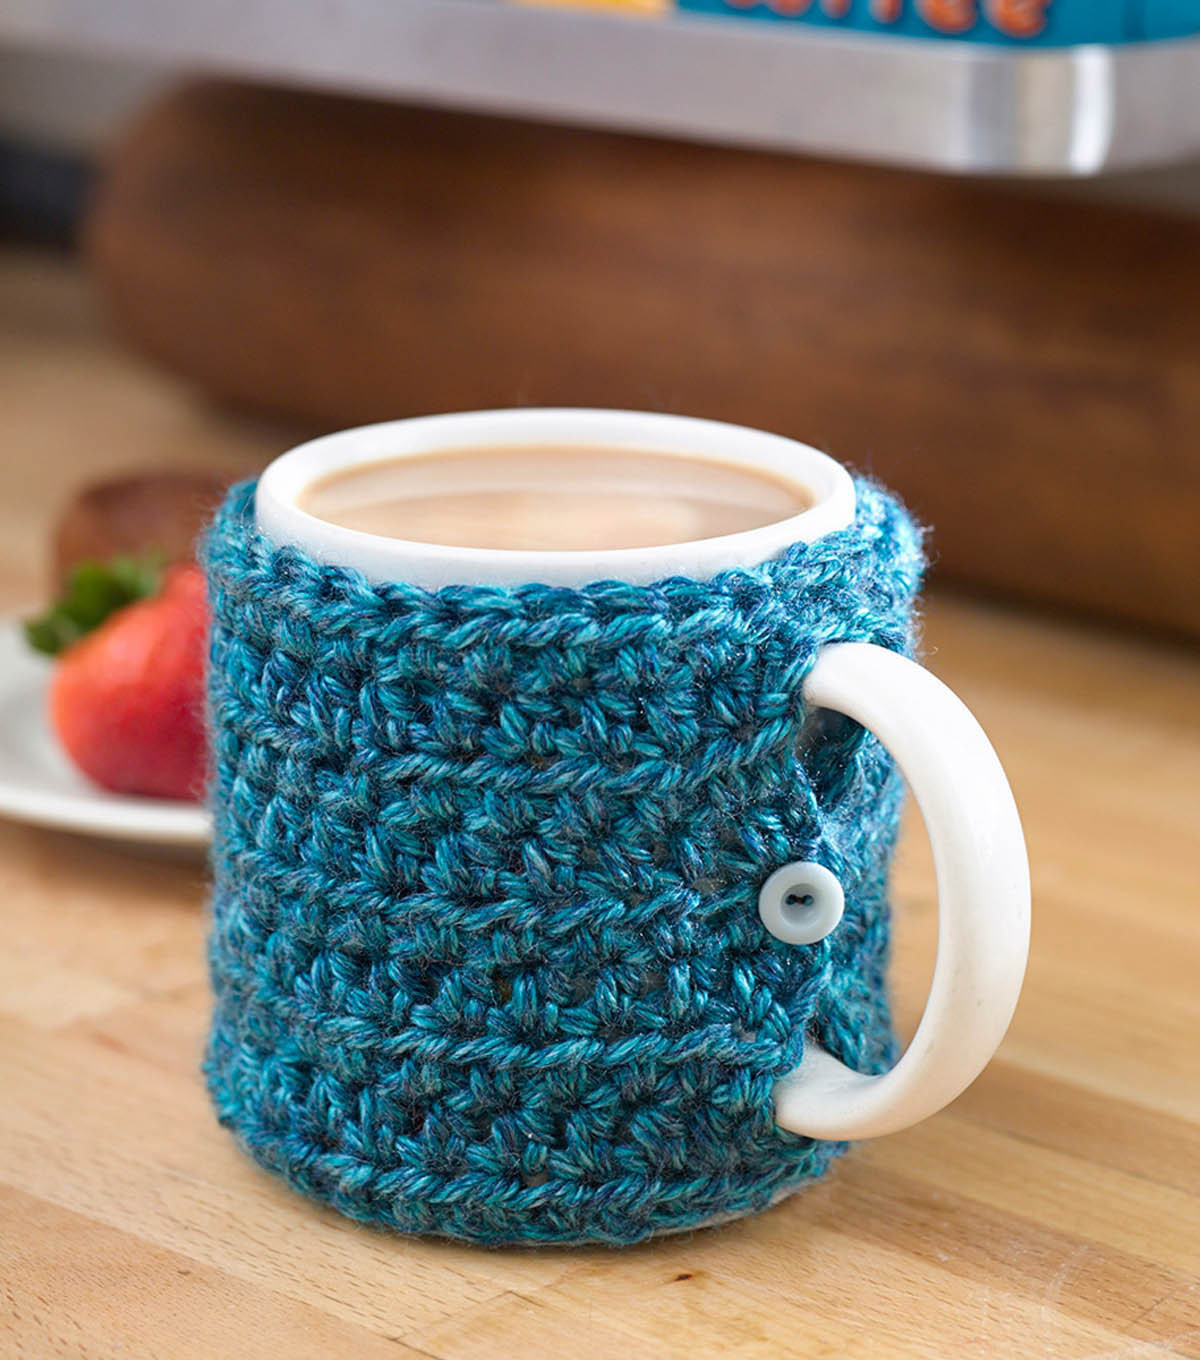 Crochet Coffee Cup Cozy Best Of Craftdrawer Crafts Free Easy to Crochet Mug Cozy Patterns Of Unique 44 Pics Crochet Coffee Cup Cozy